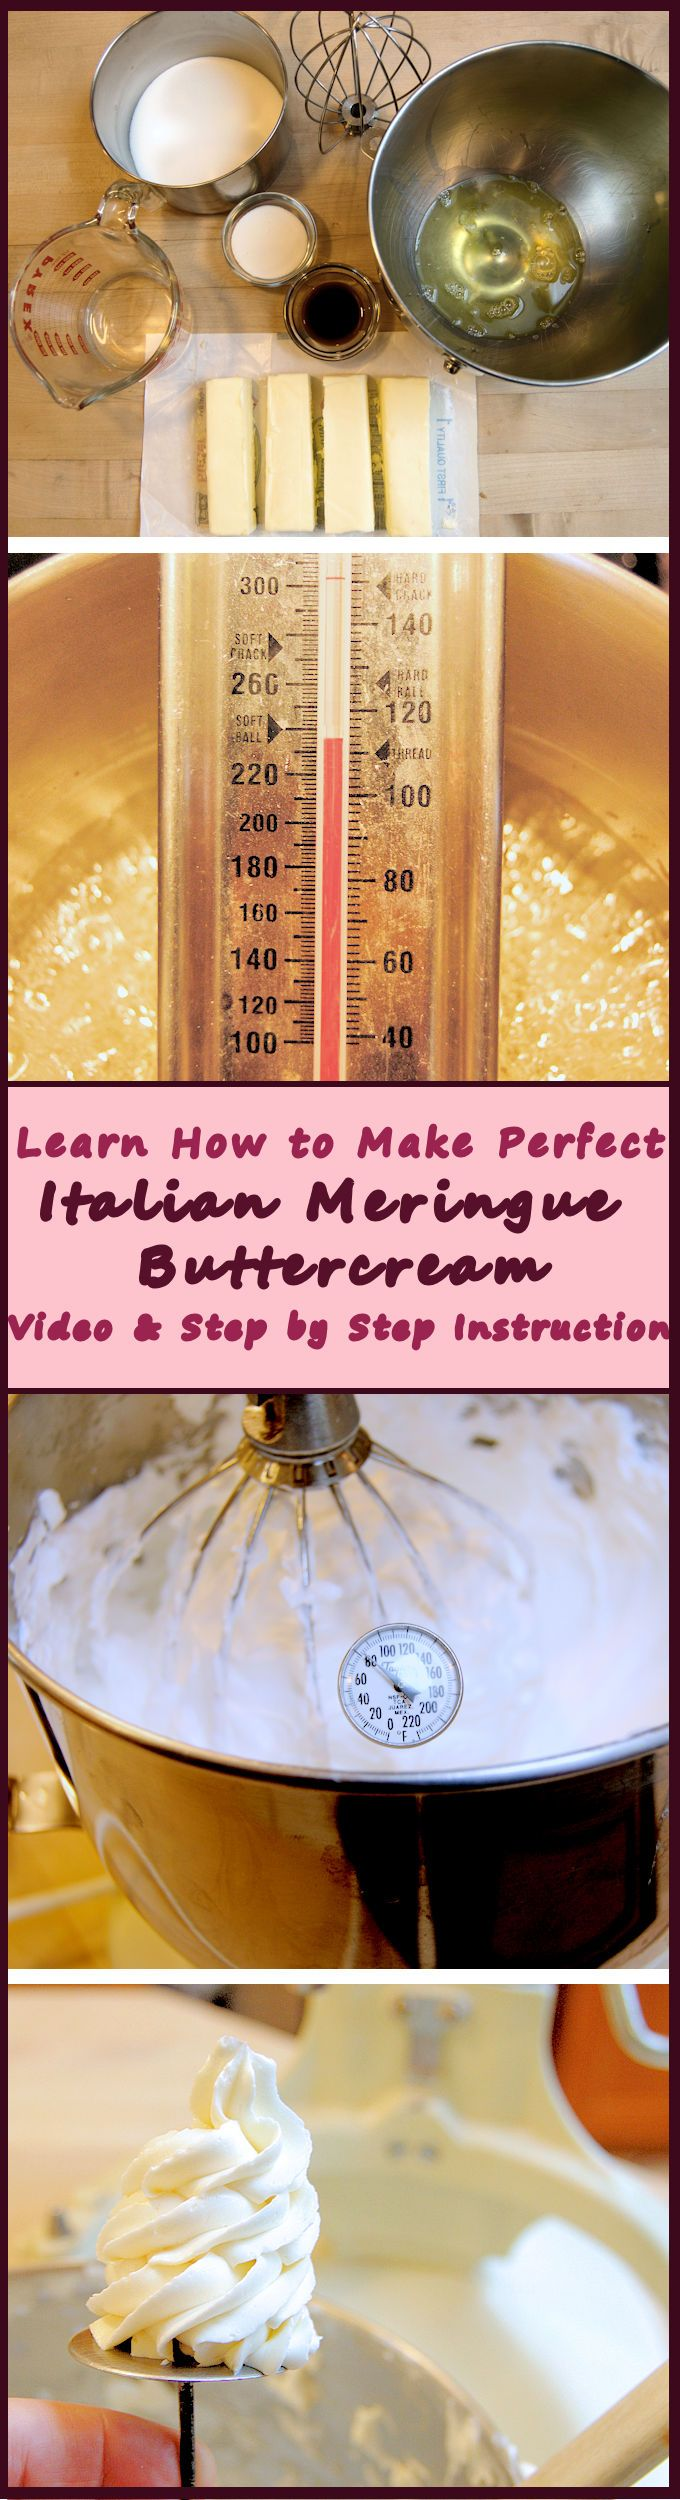 Learn how to make Italian Meringue buttercream with detailed instructions and a video.